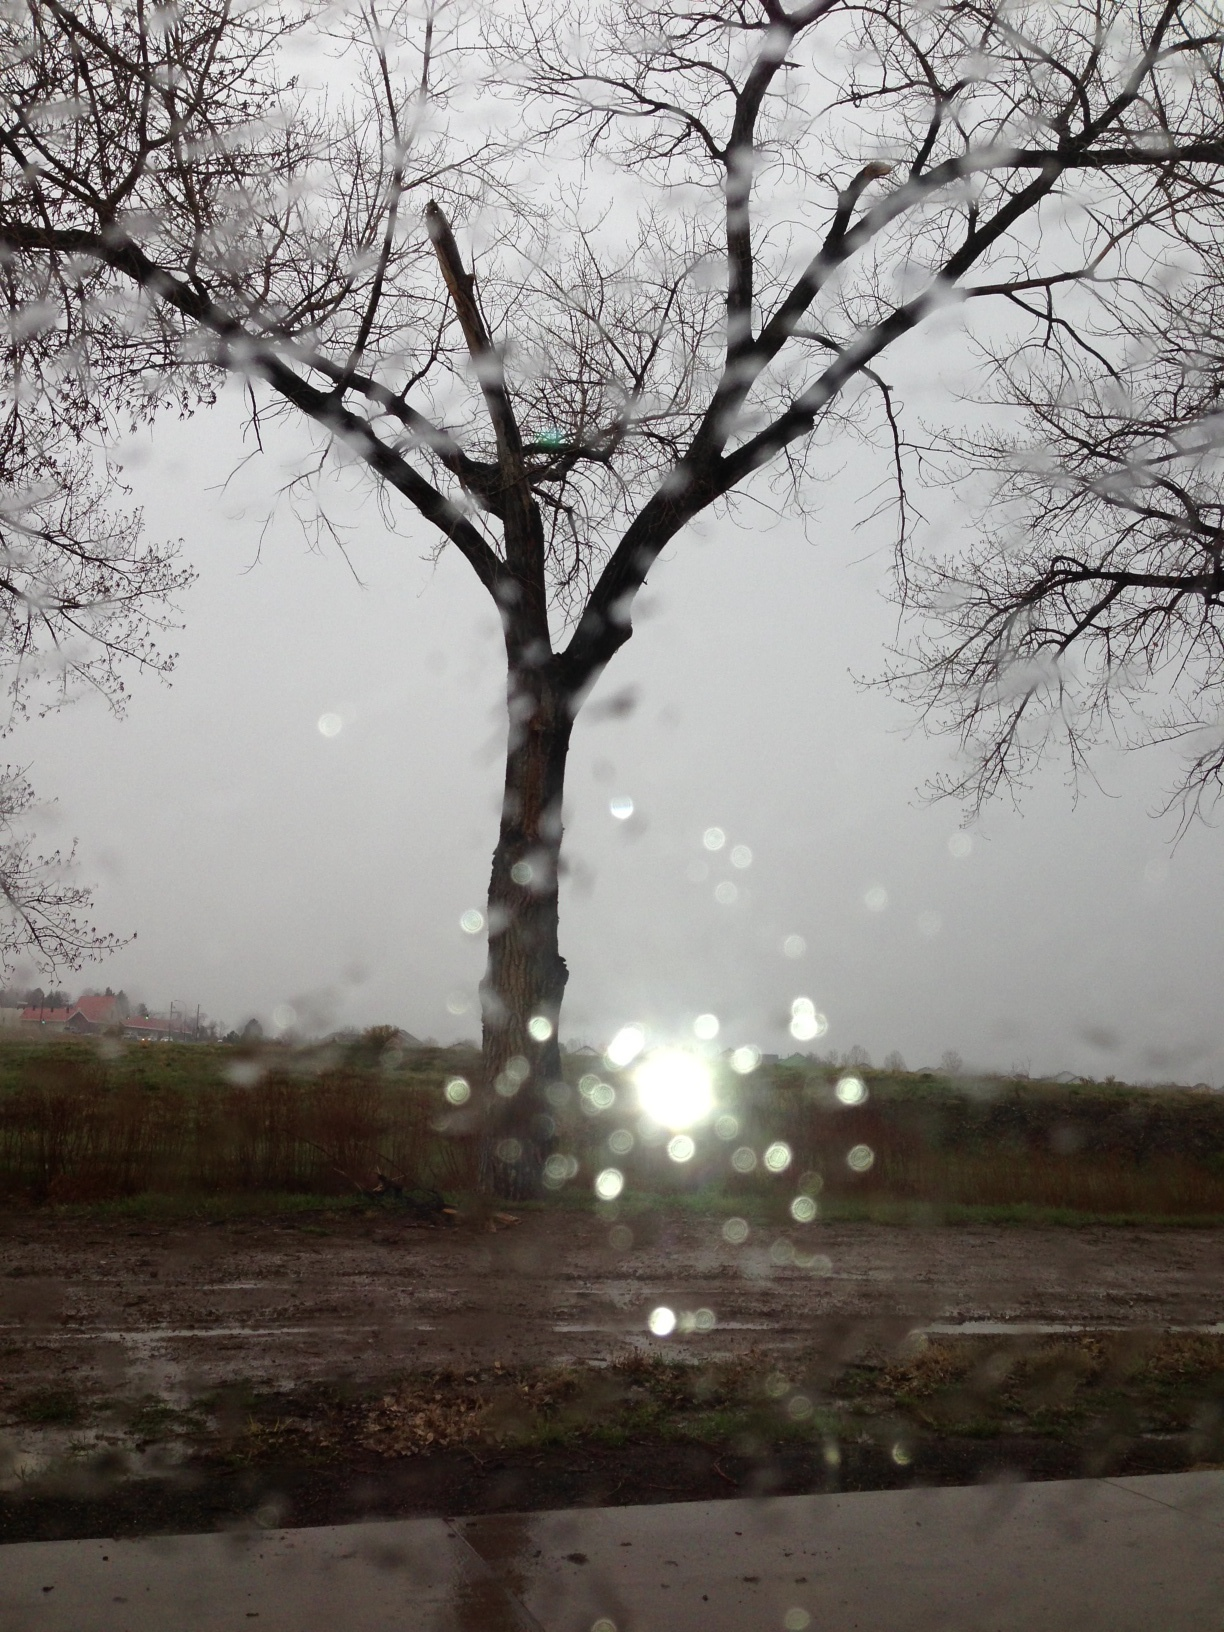 rainy window.JPG